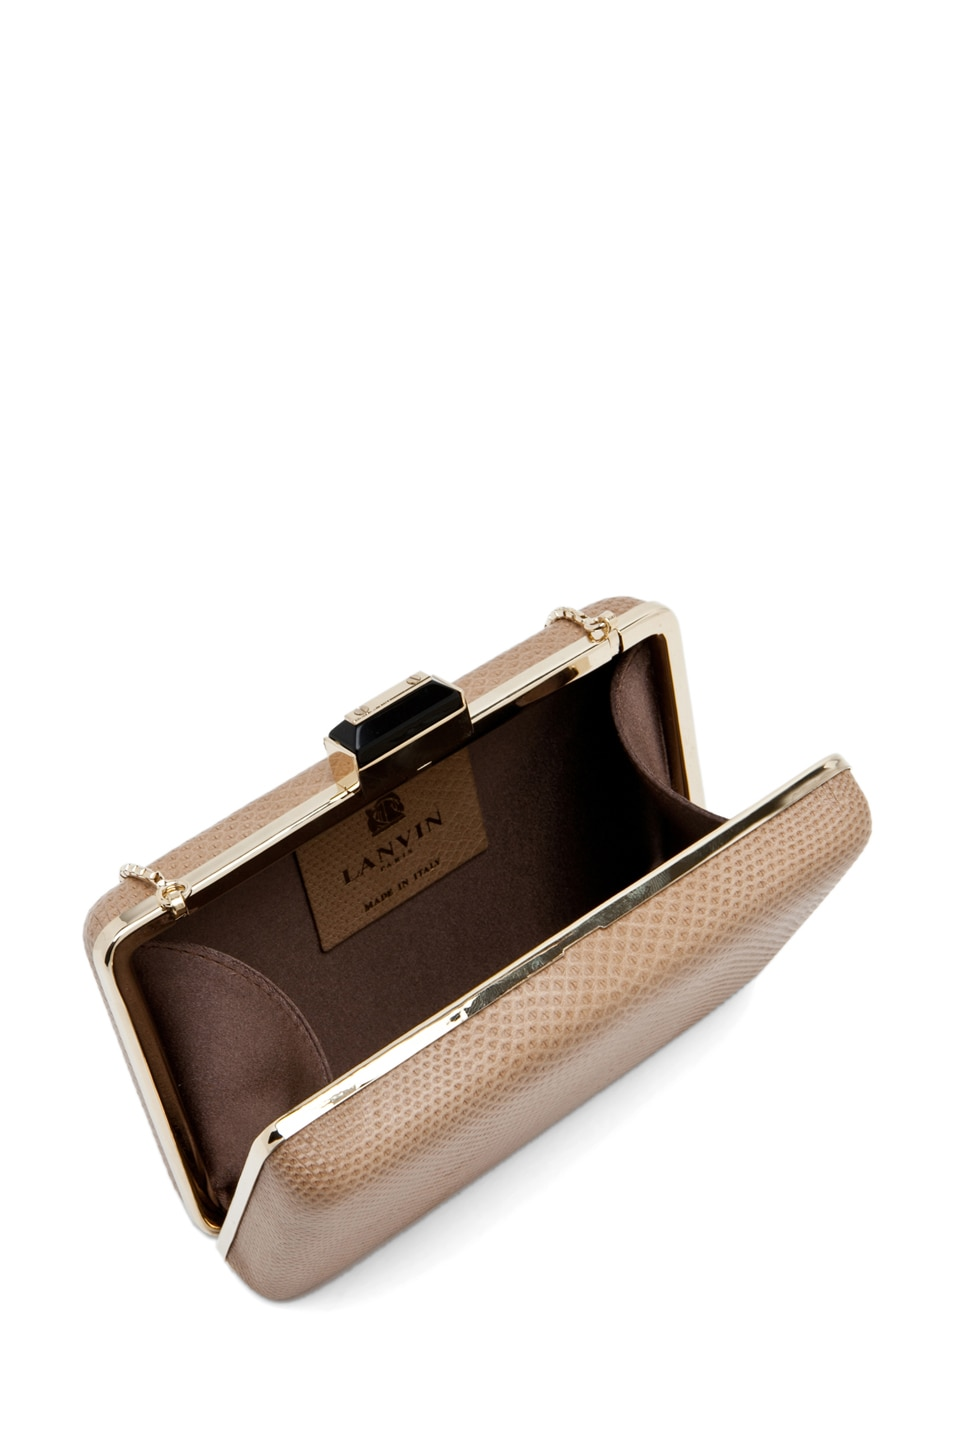 Image 4 of Lanvin Mini Serpent Clutch in Beige